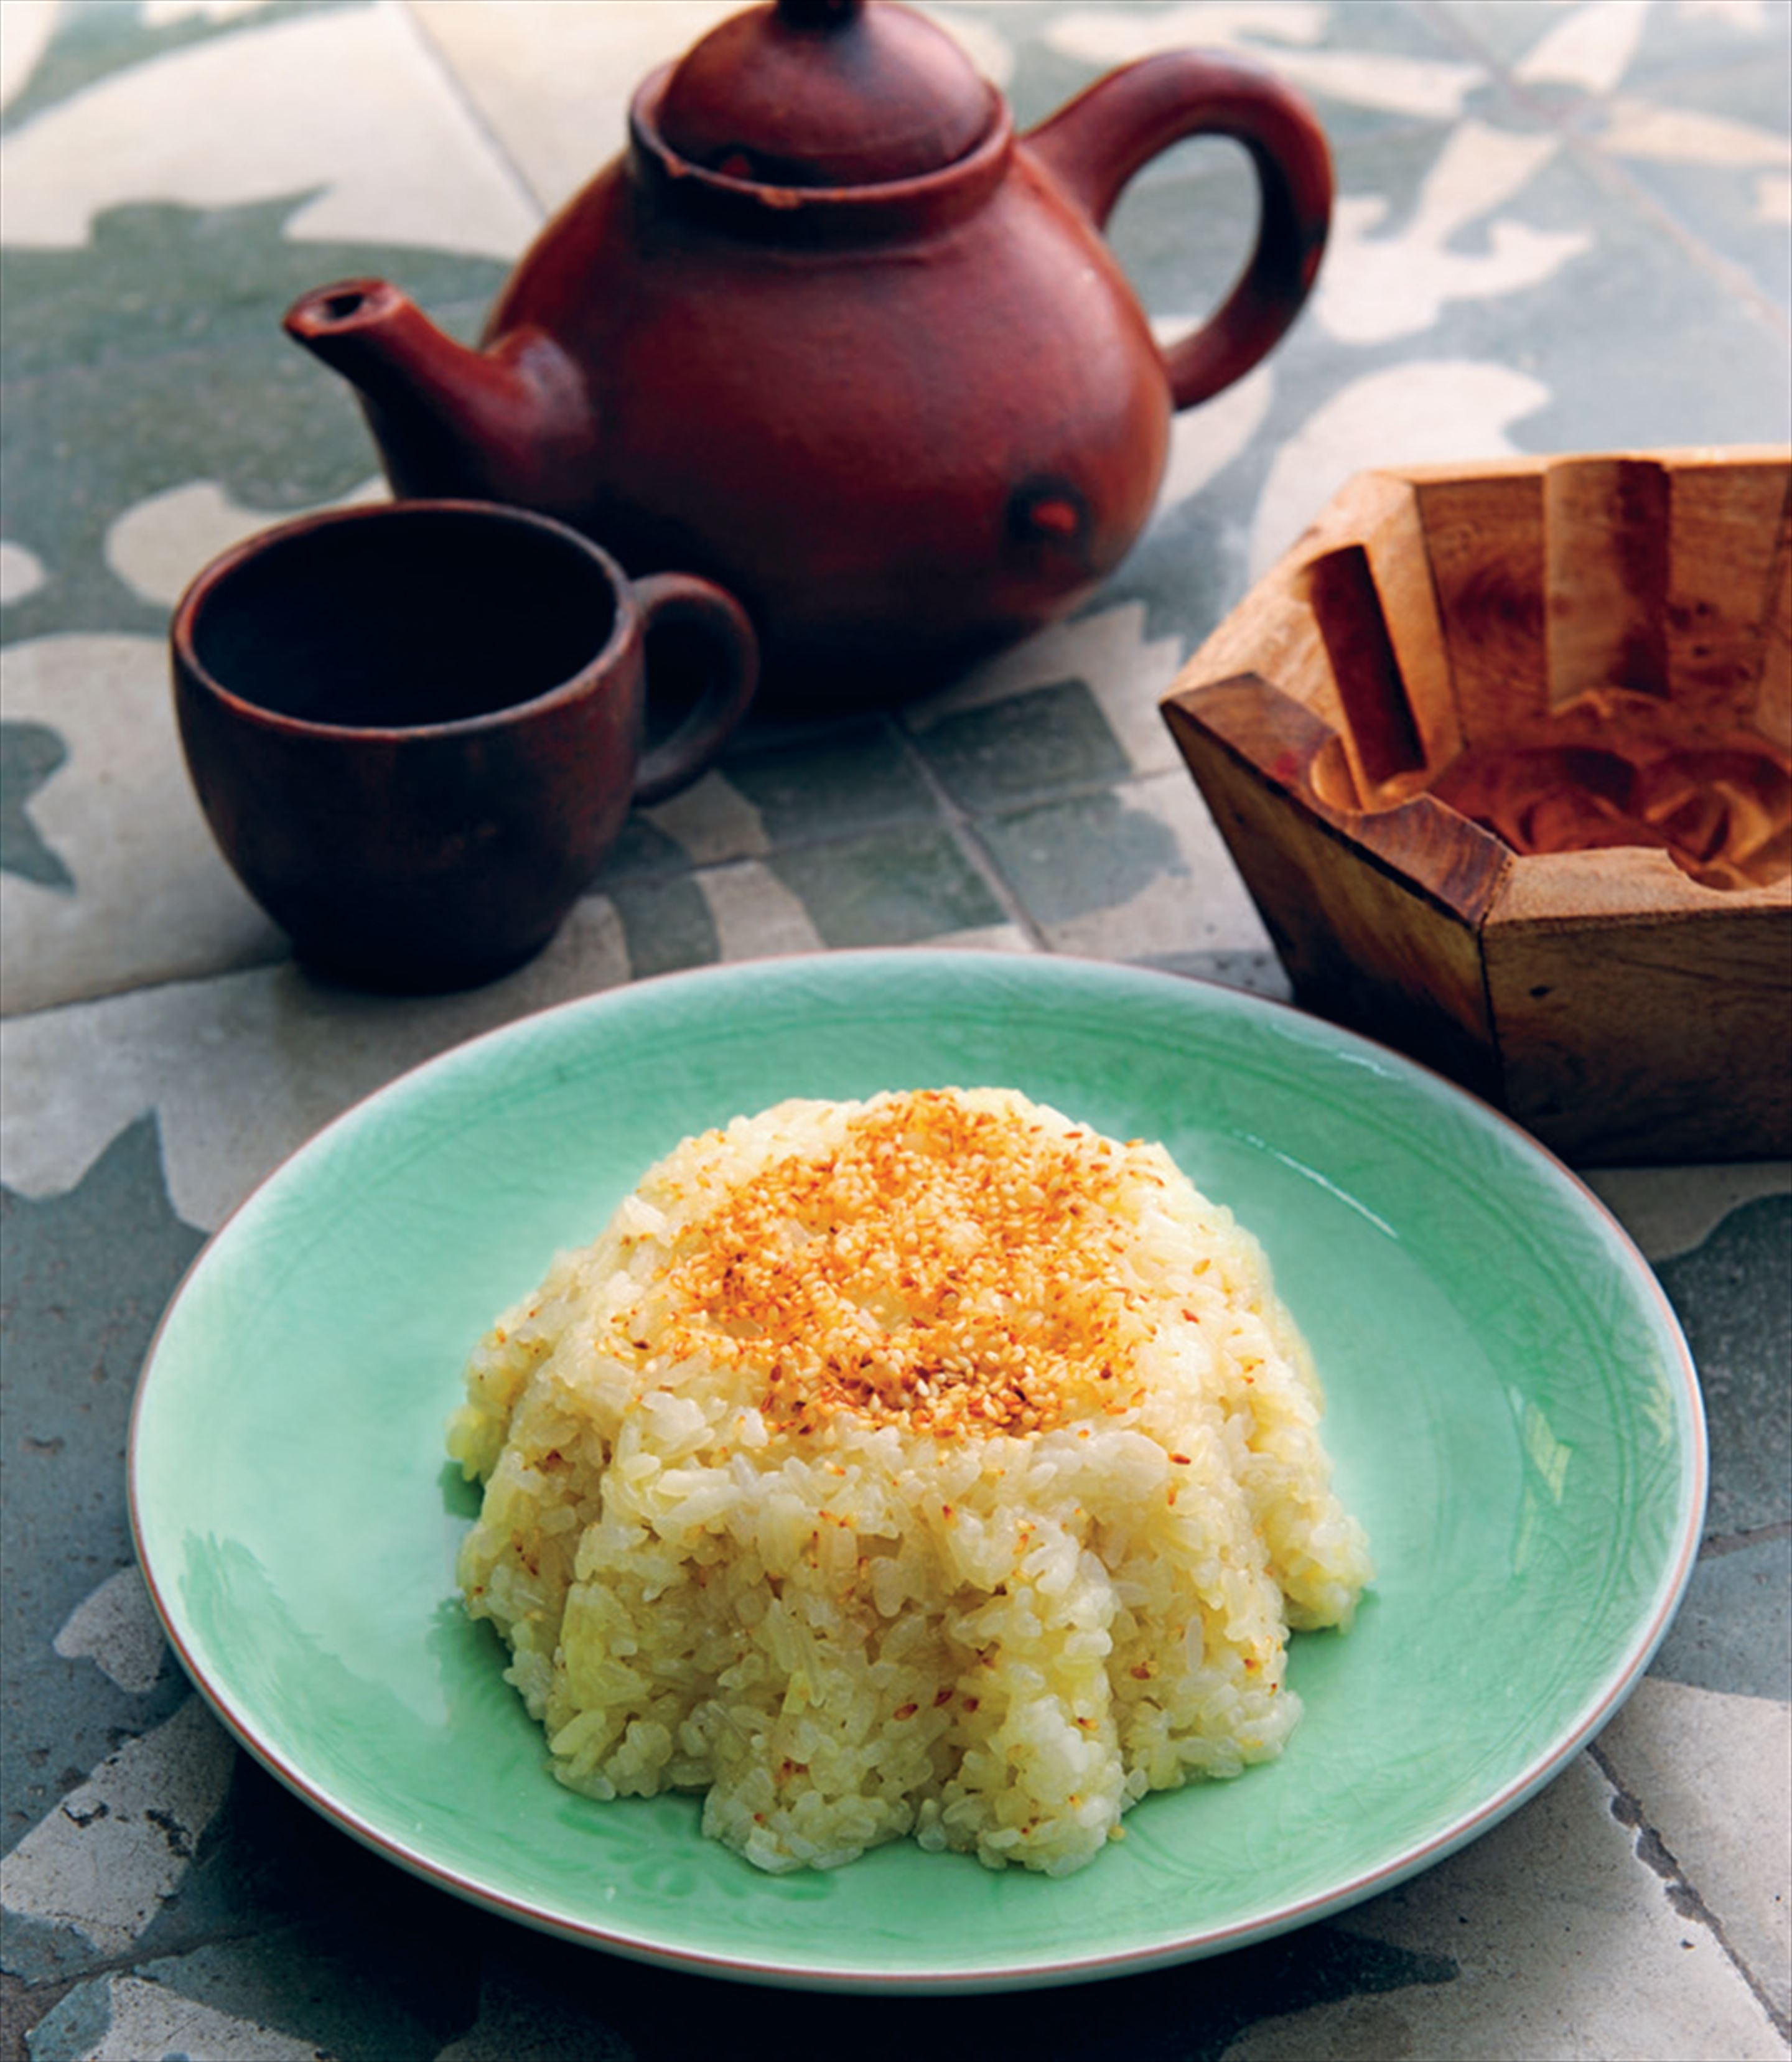 Ginger sticky rice cakes